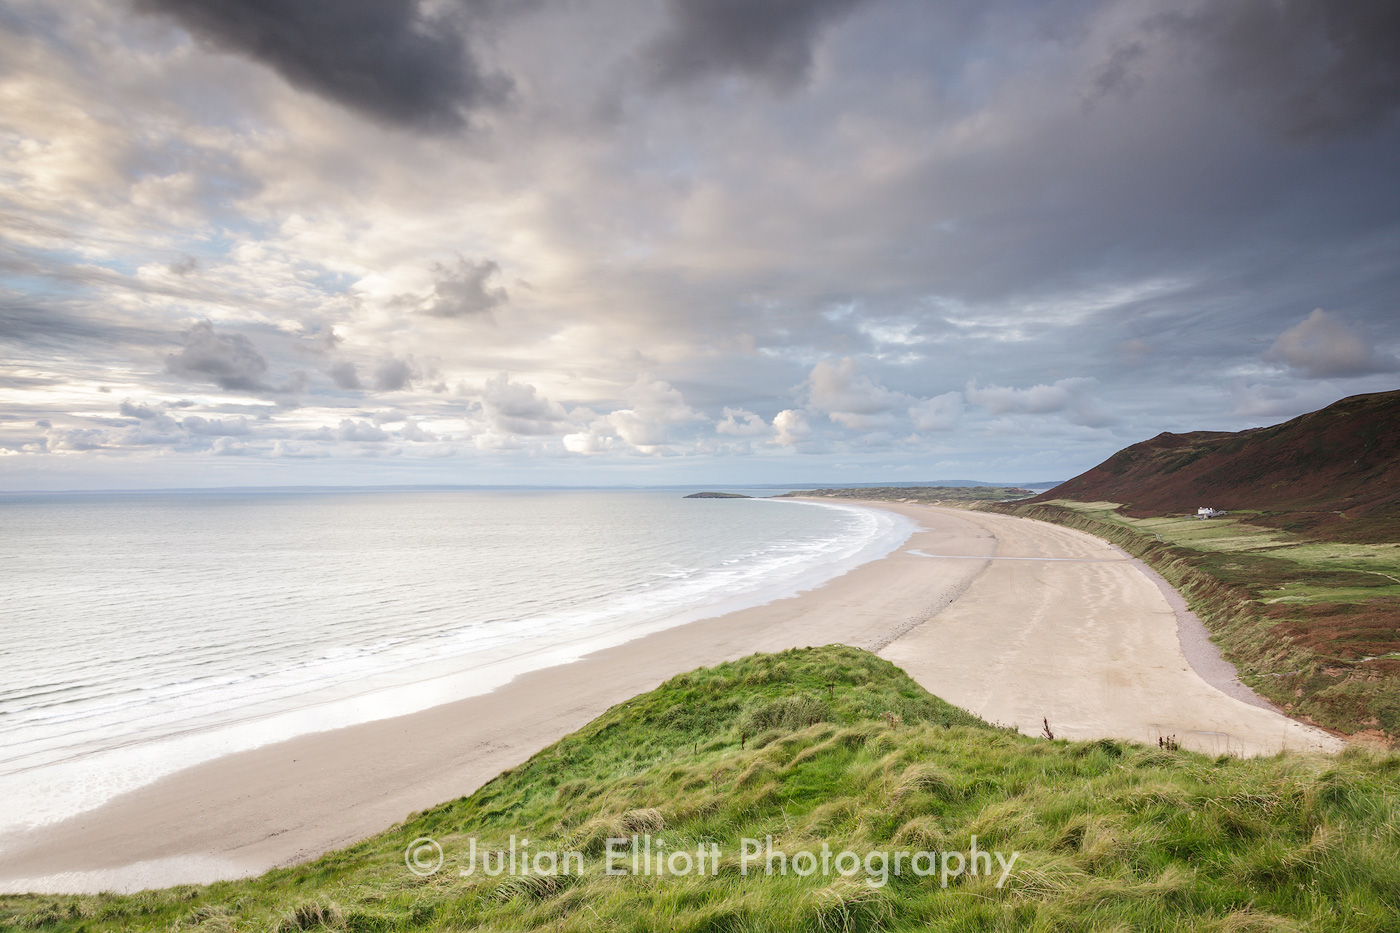 Rhossili Bay on the Gower Peninsula